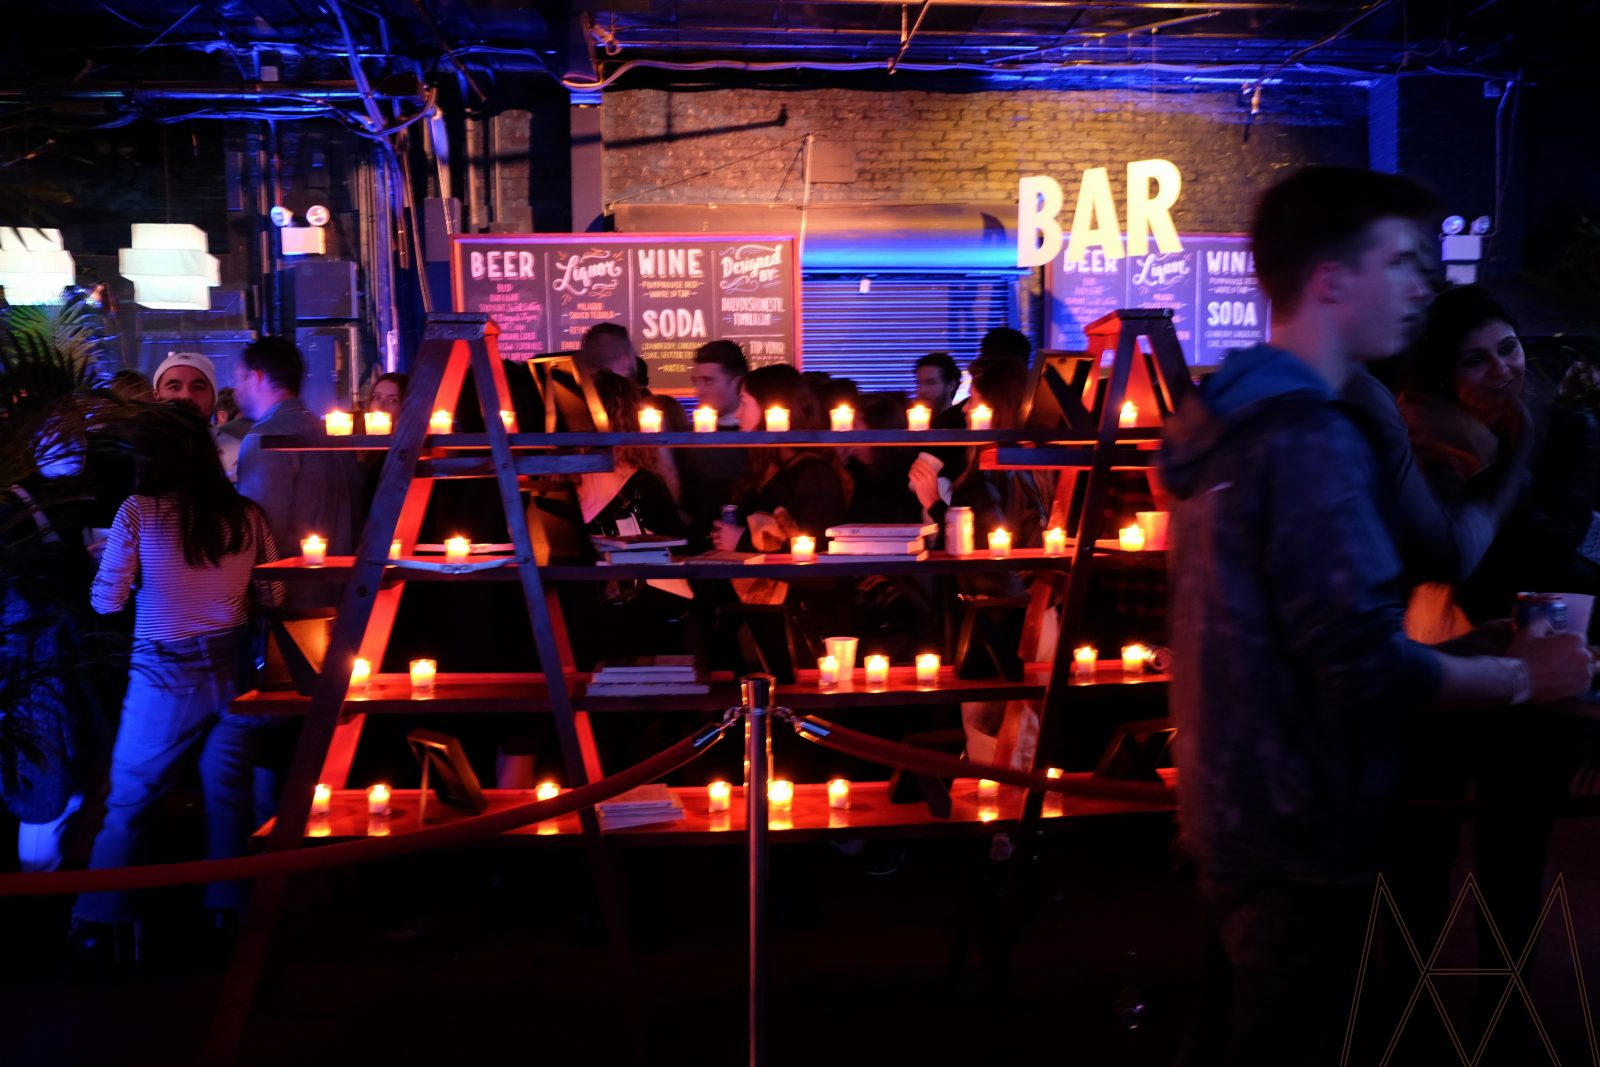 TUMBLR'S YEAR IN REVIEW PARTY 2014 - TheUrbanRealist